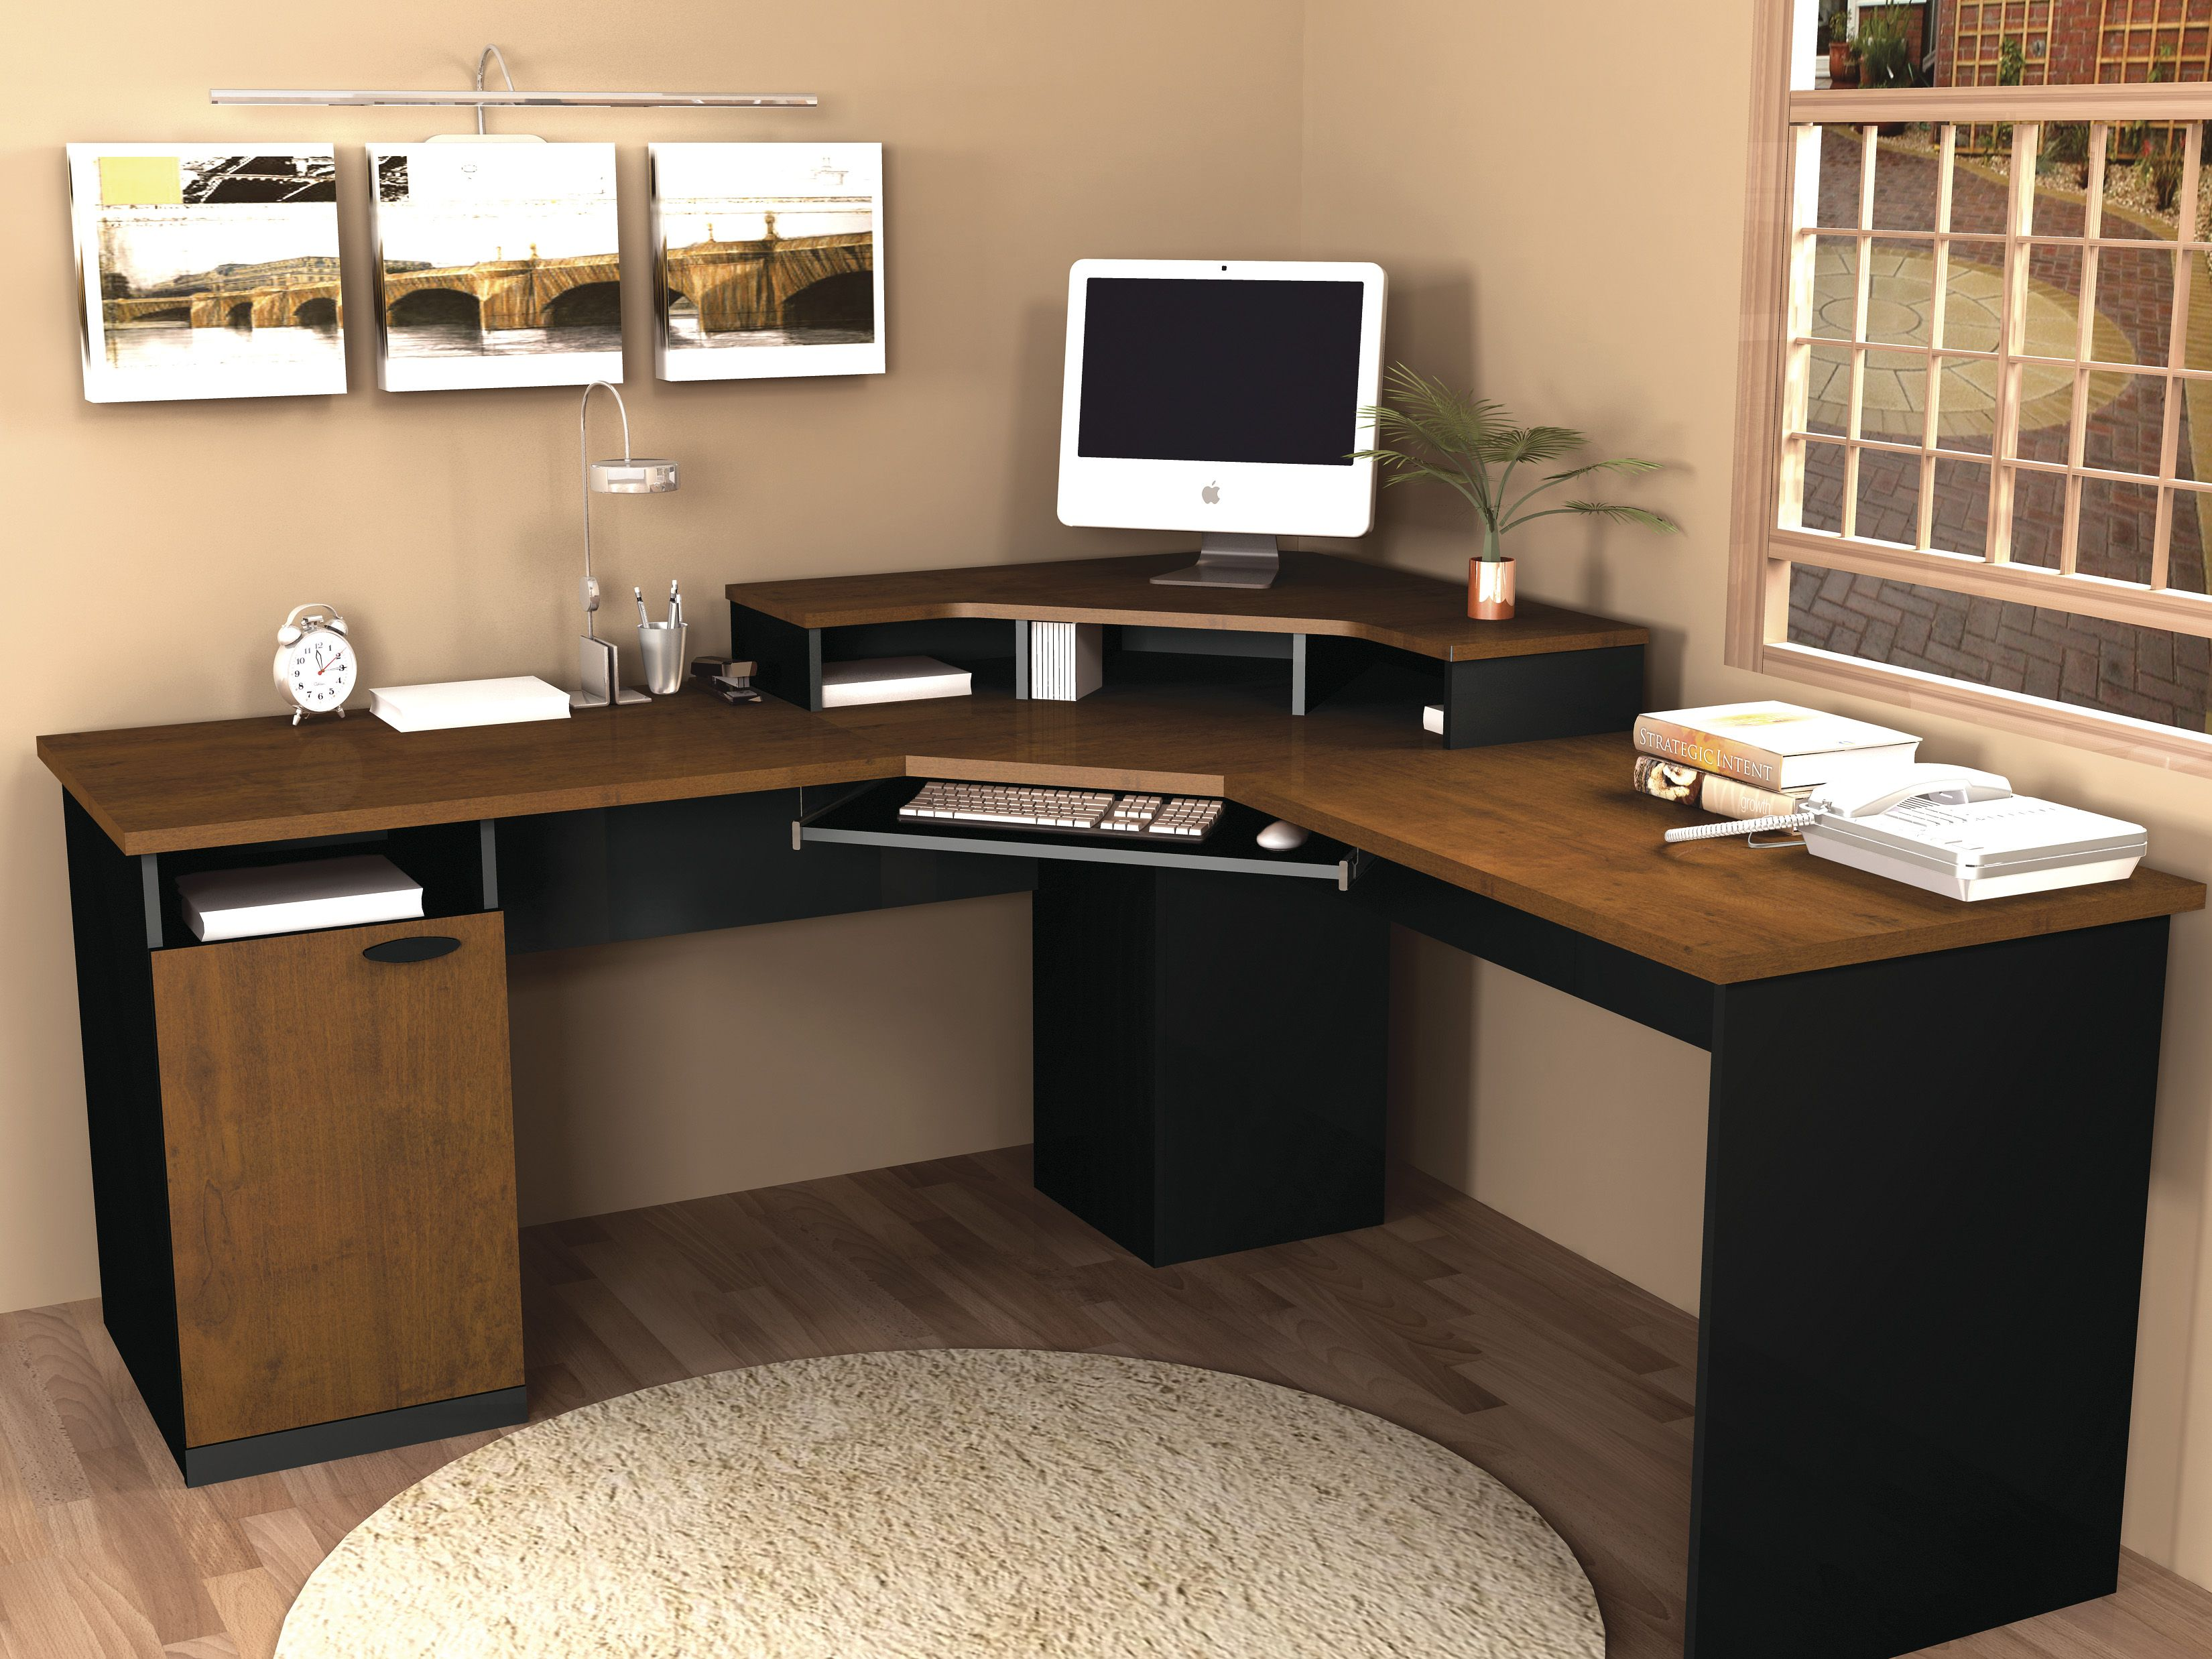 Computer Table With L Shaped Desk You Can Apply Corner Computer Desk Is A Good Choice For Small Space Computer Desks For Home Desk Furniture Corner Workstation